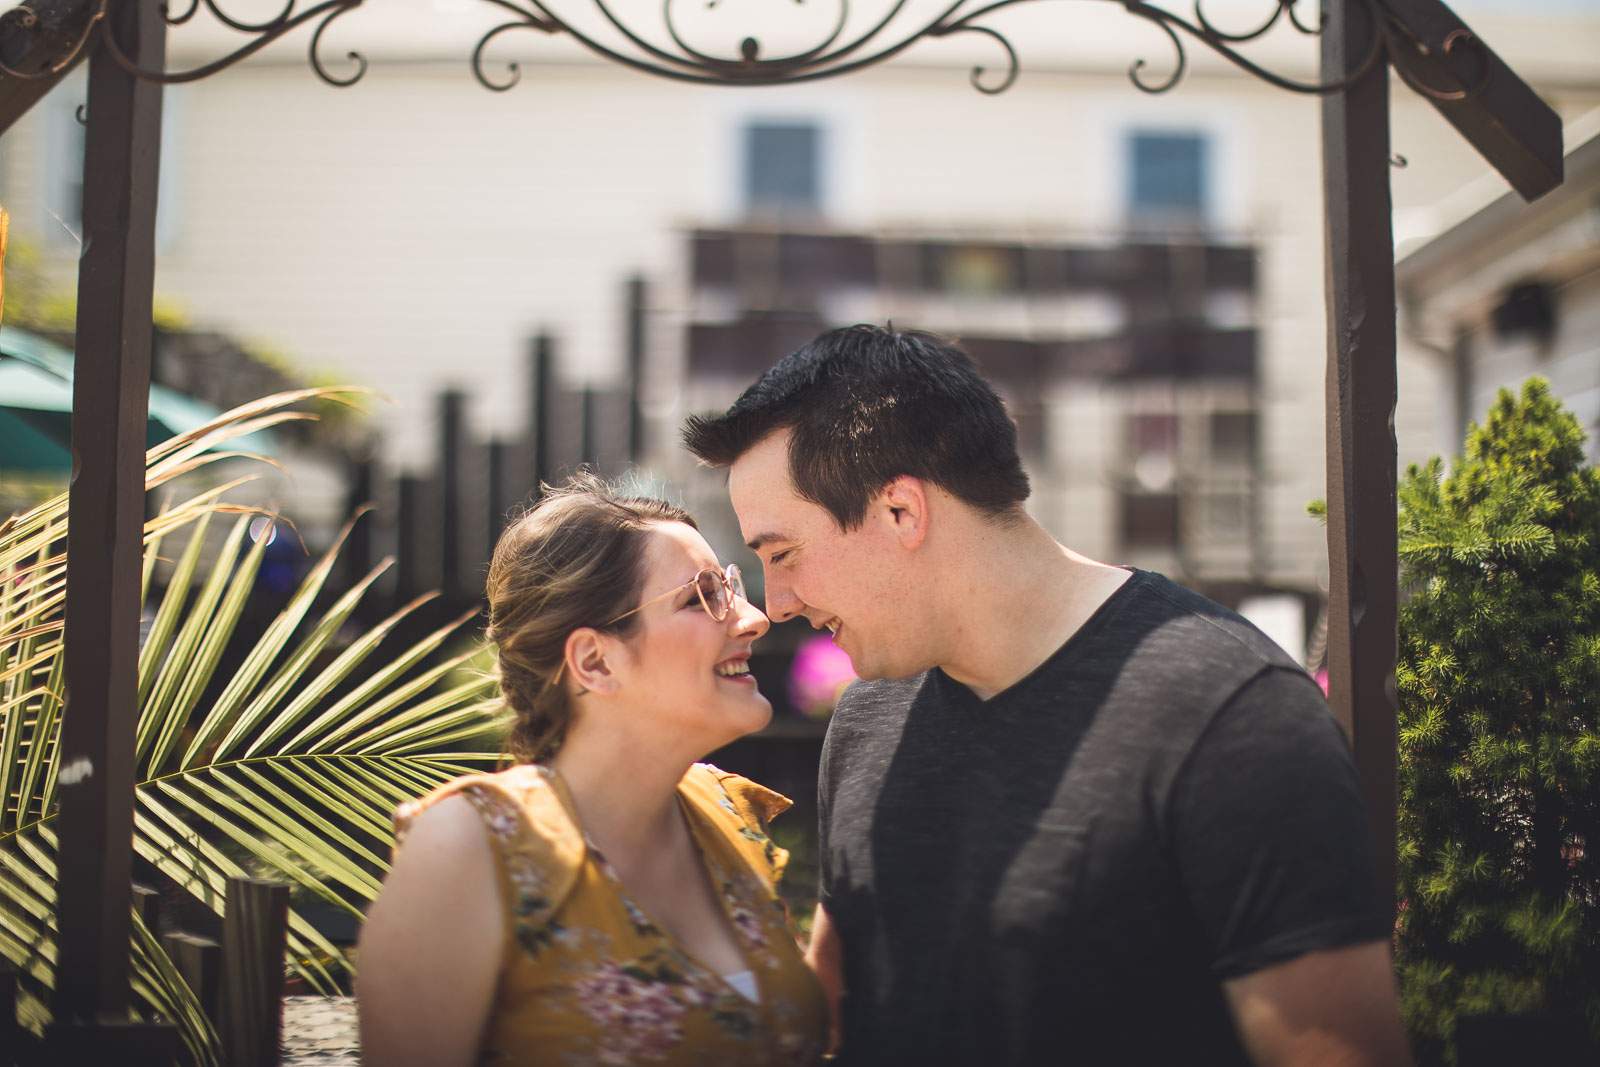 Clinton NJ Garden Engagement Photo